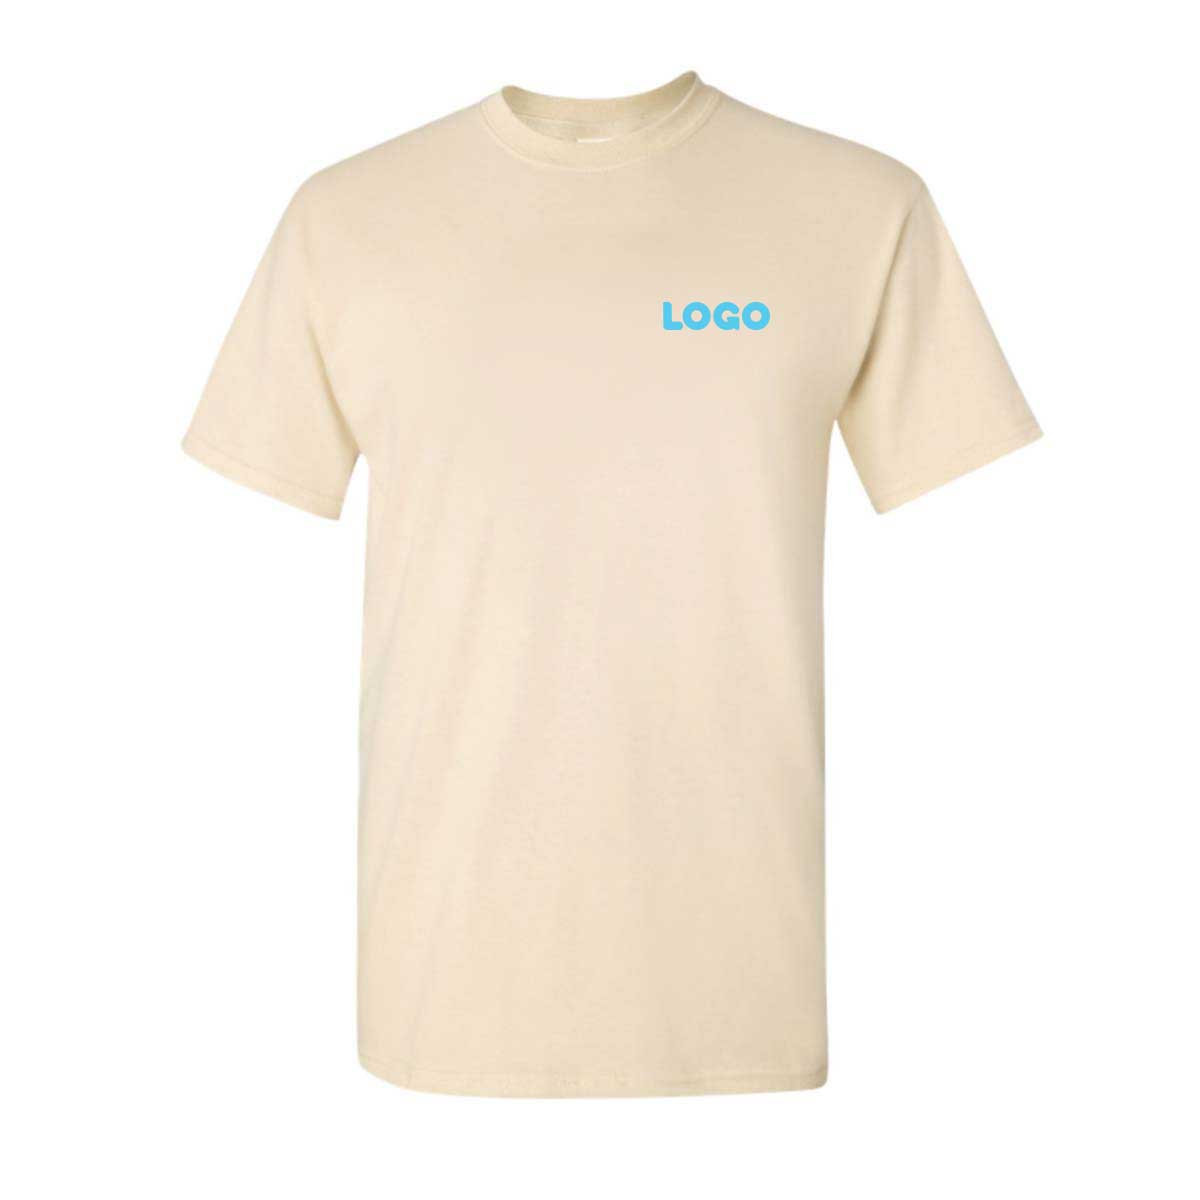 134807 ultra cotton tee one color one location screen